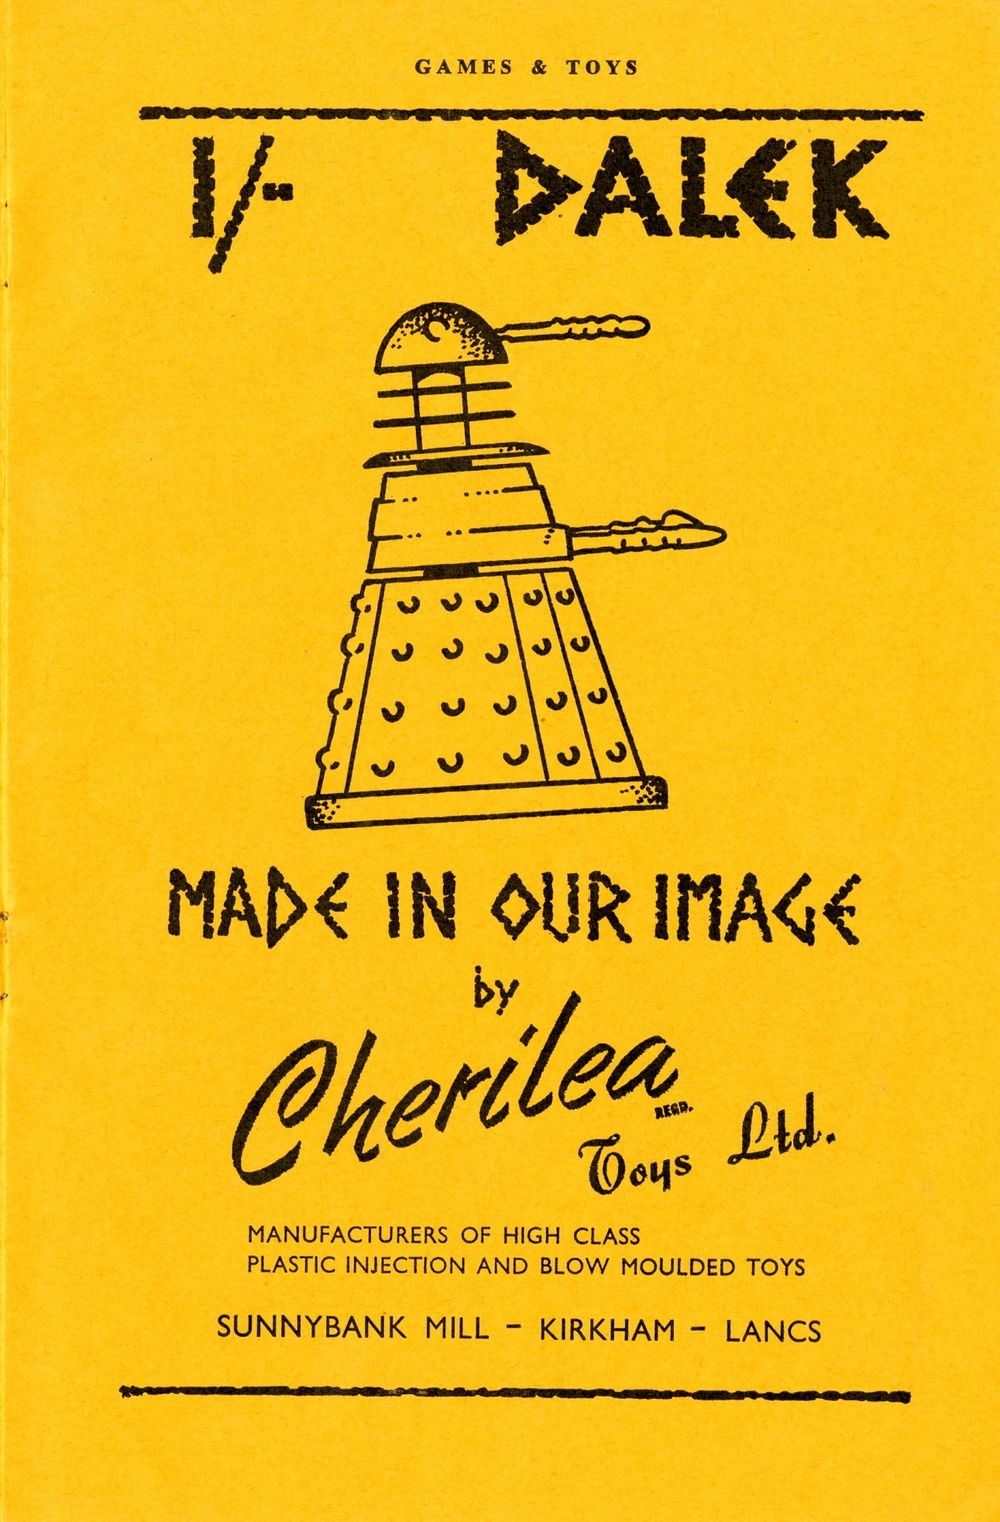 Ad. for Cherilea Toys Ltd. Dalek Swap-Its from the Supplement to Games and Toys, September 1965